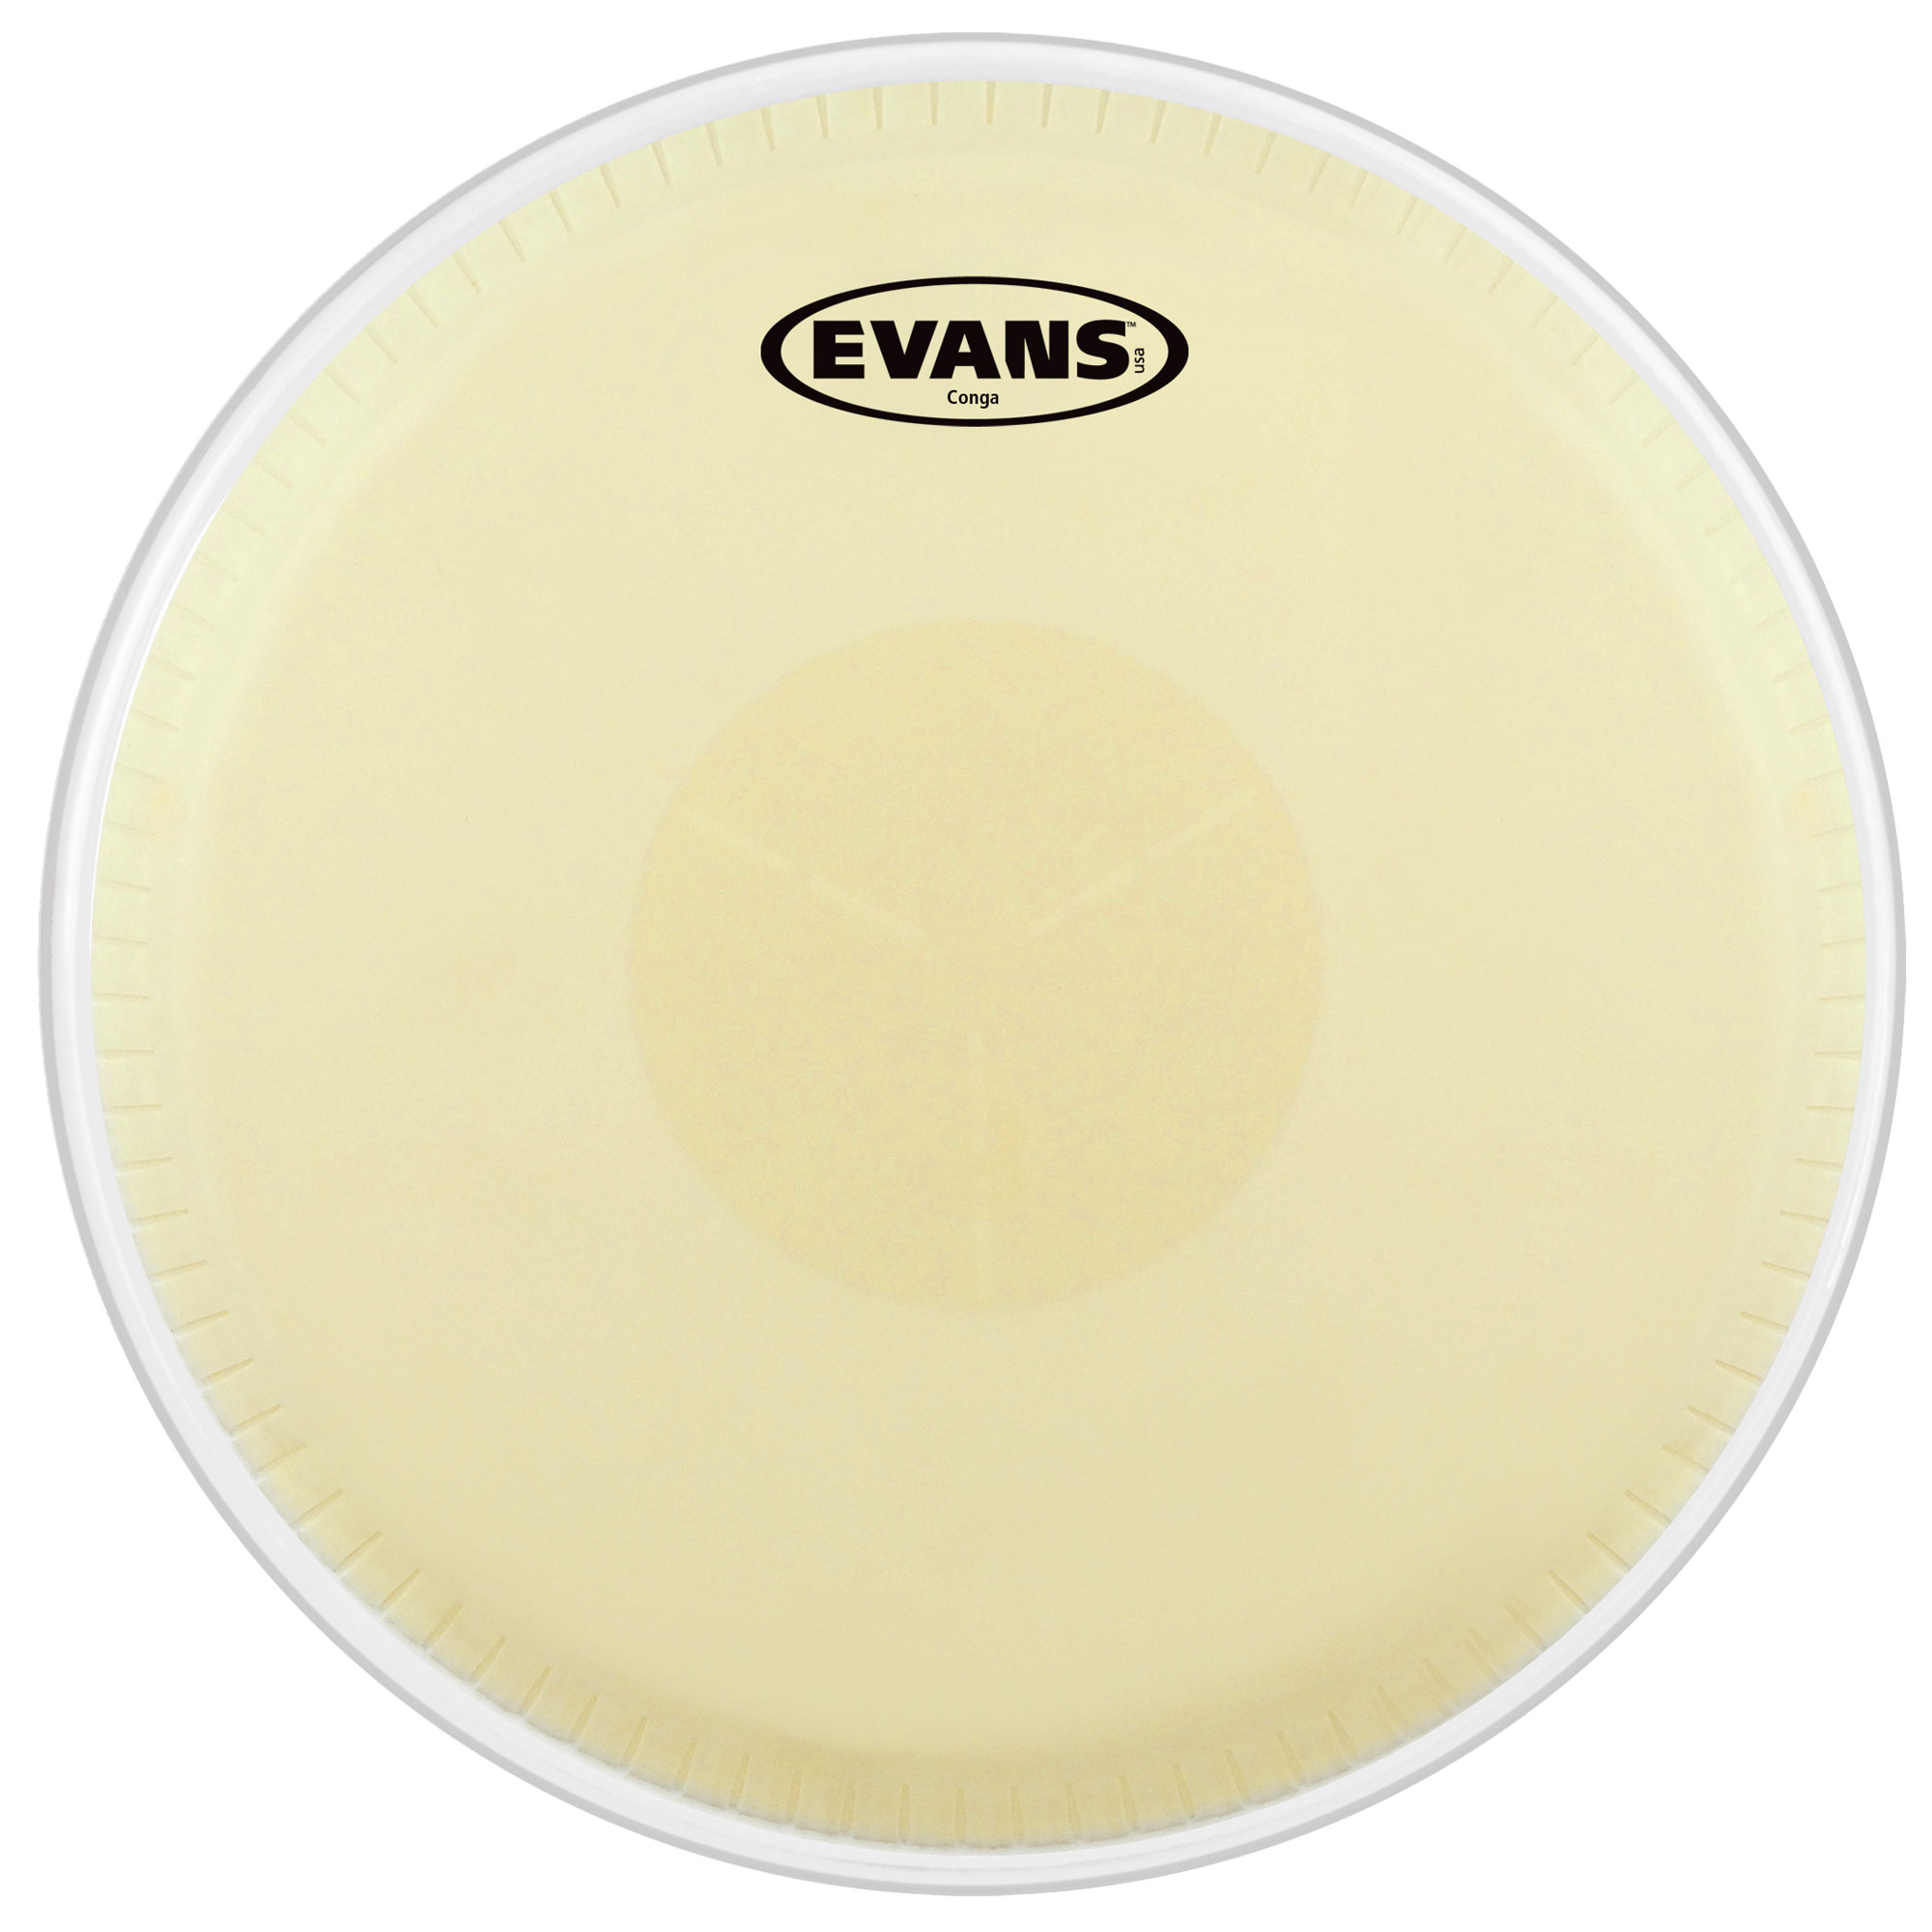 "Evans 9.75"" Tri-Center Conga Head"